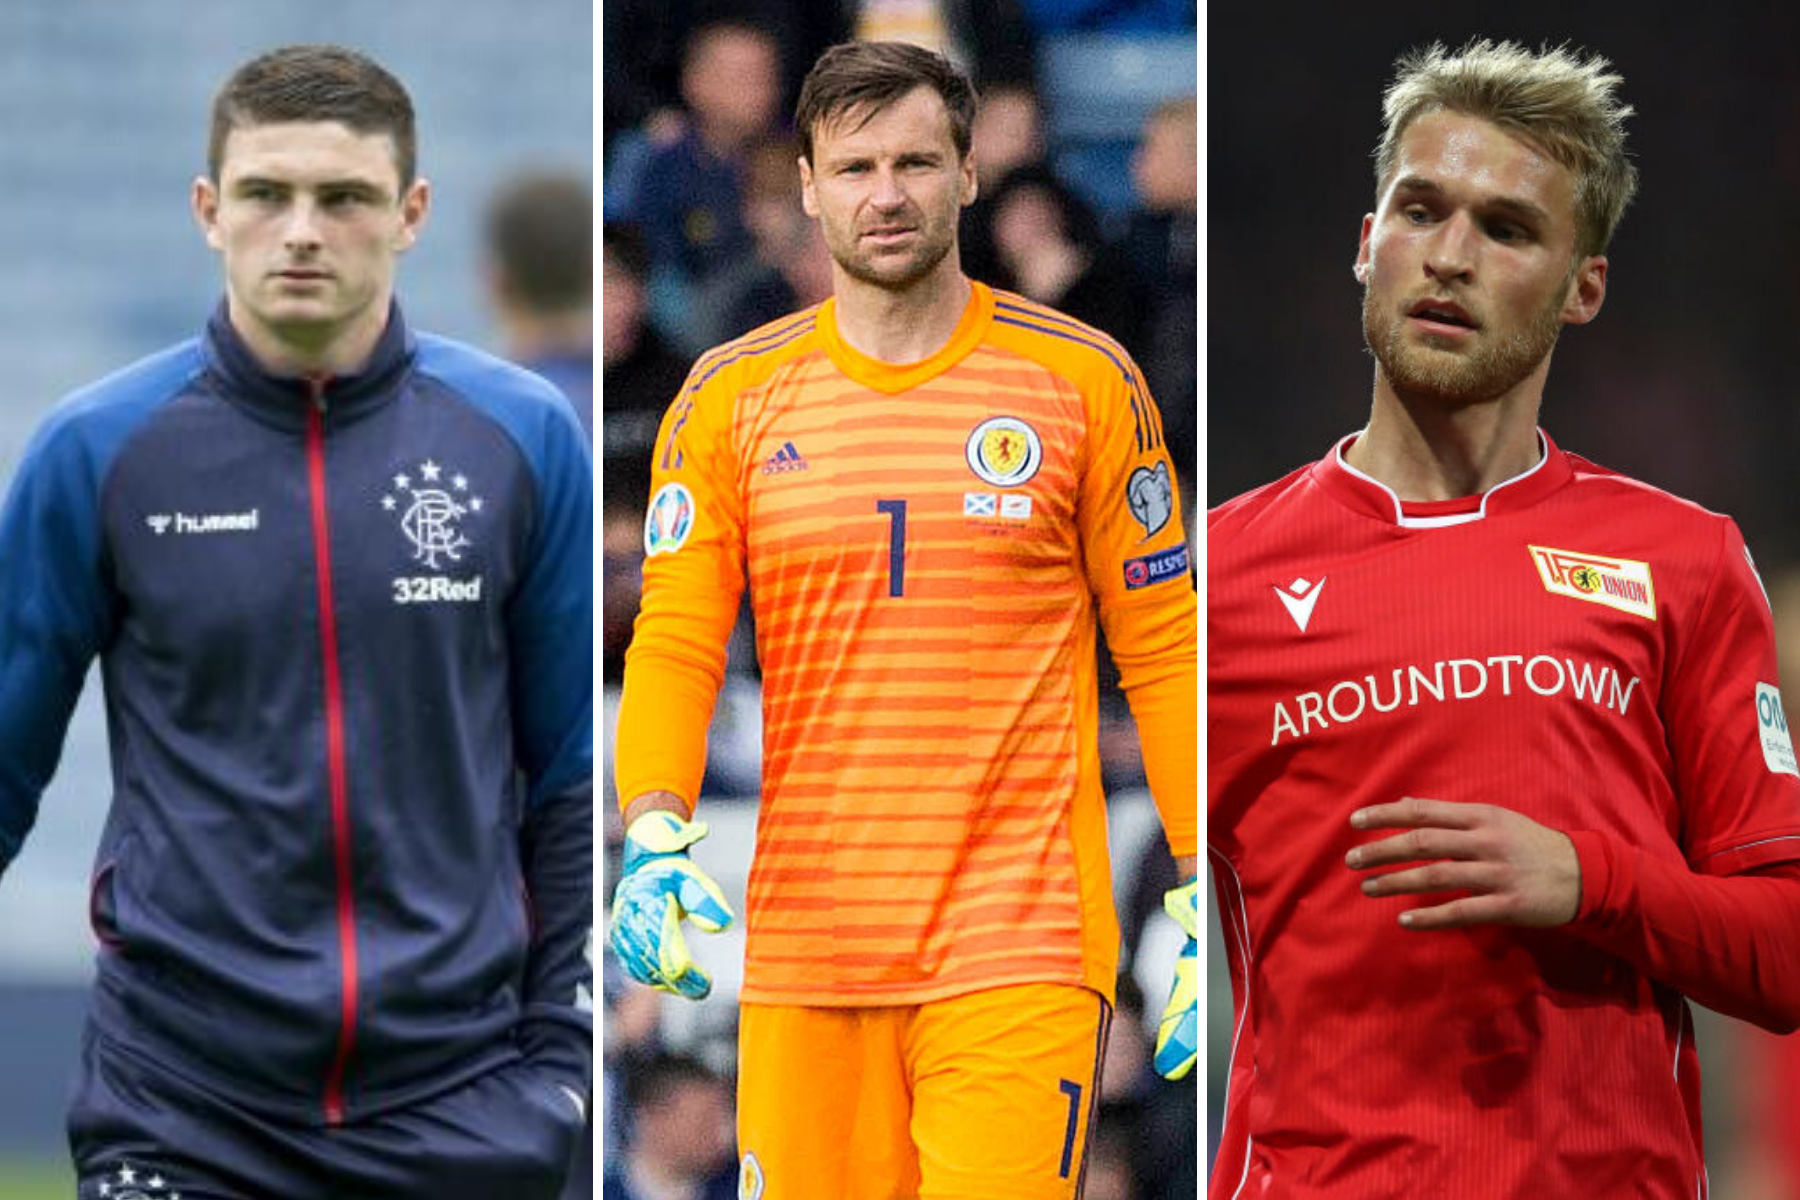 Scottish transfer news LIVE: David Marshall to Celtic latest | Sebastian Andersson Parkhead link | Rangers ace Hastie closes in on loan deal